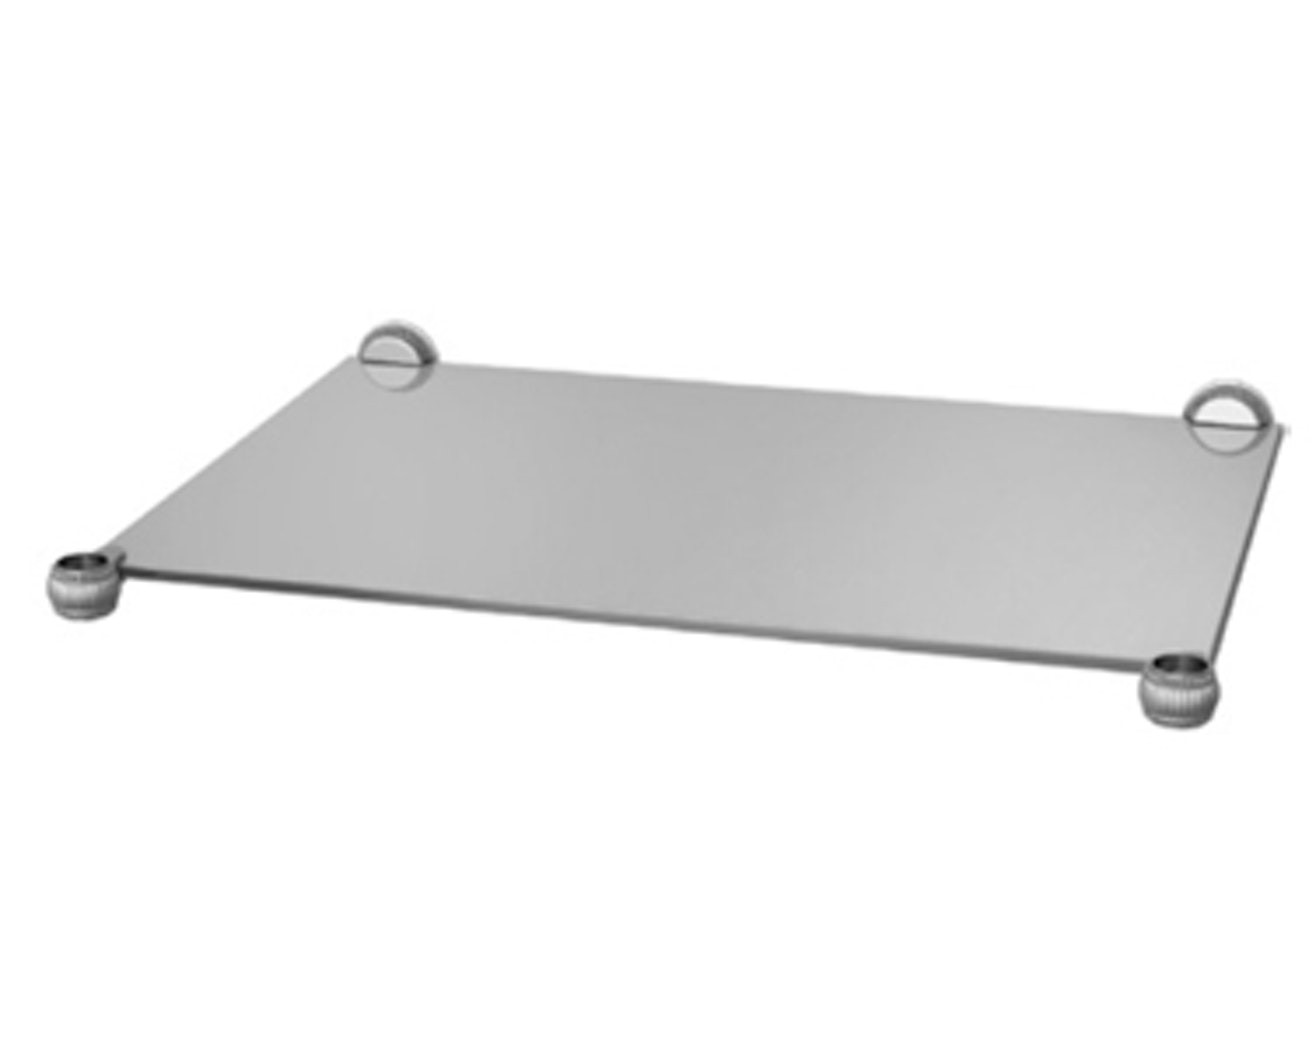 WATERMARK CON24-HS-0.8 BEVERLY 18 INCH WALL MOUNT HAMPSHIRE OR SMOOTH TEMPERED GLASS SHELF FOR 24 INCH CONSOLE